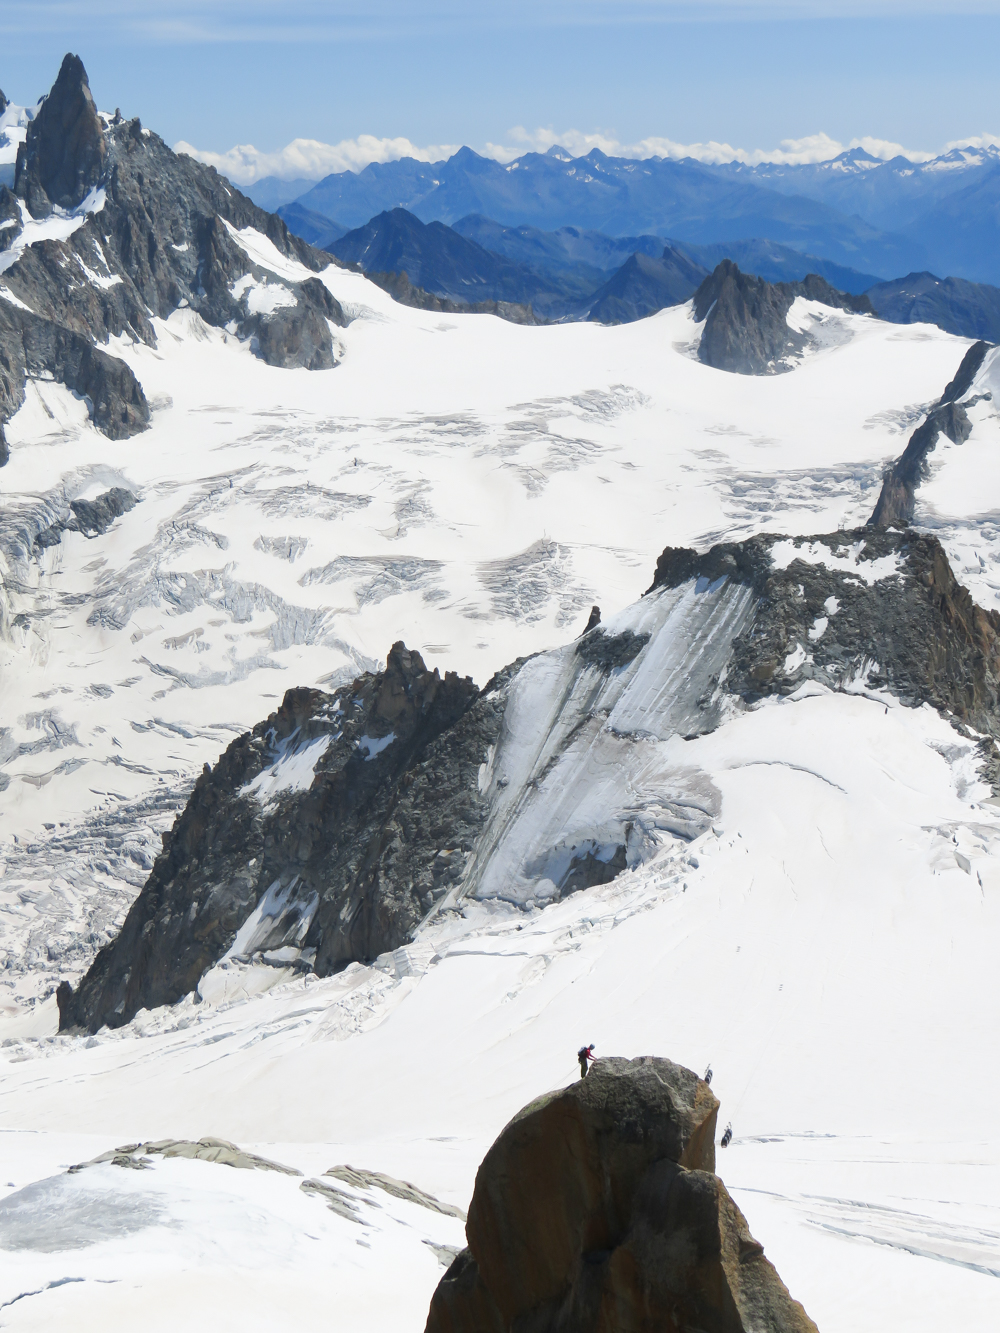 Aiguille du Midi summer visitor's guide, Chamonix, France: lone hiker and Panoramic Mont Blanc cable car to Pointe Helbronner